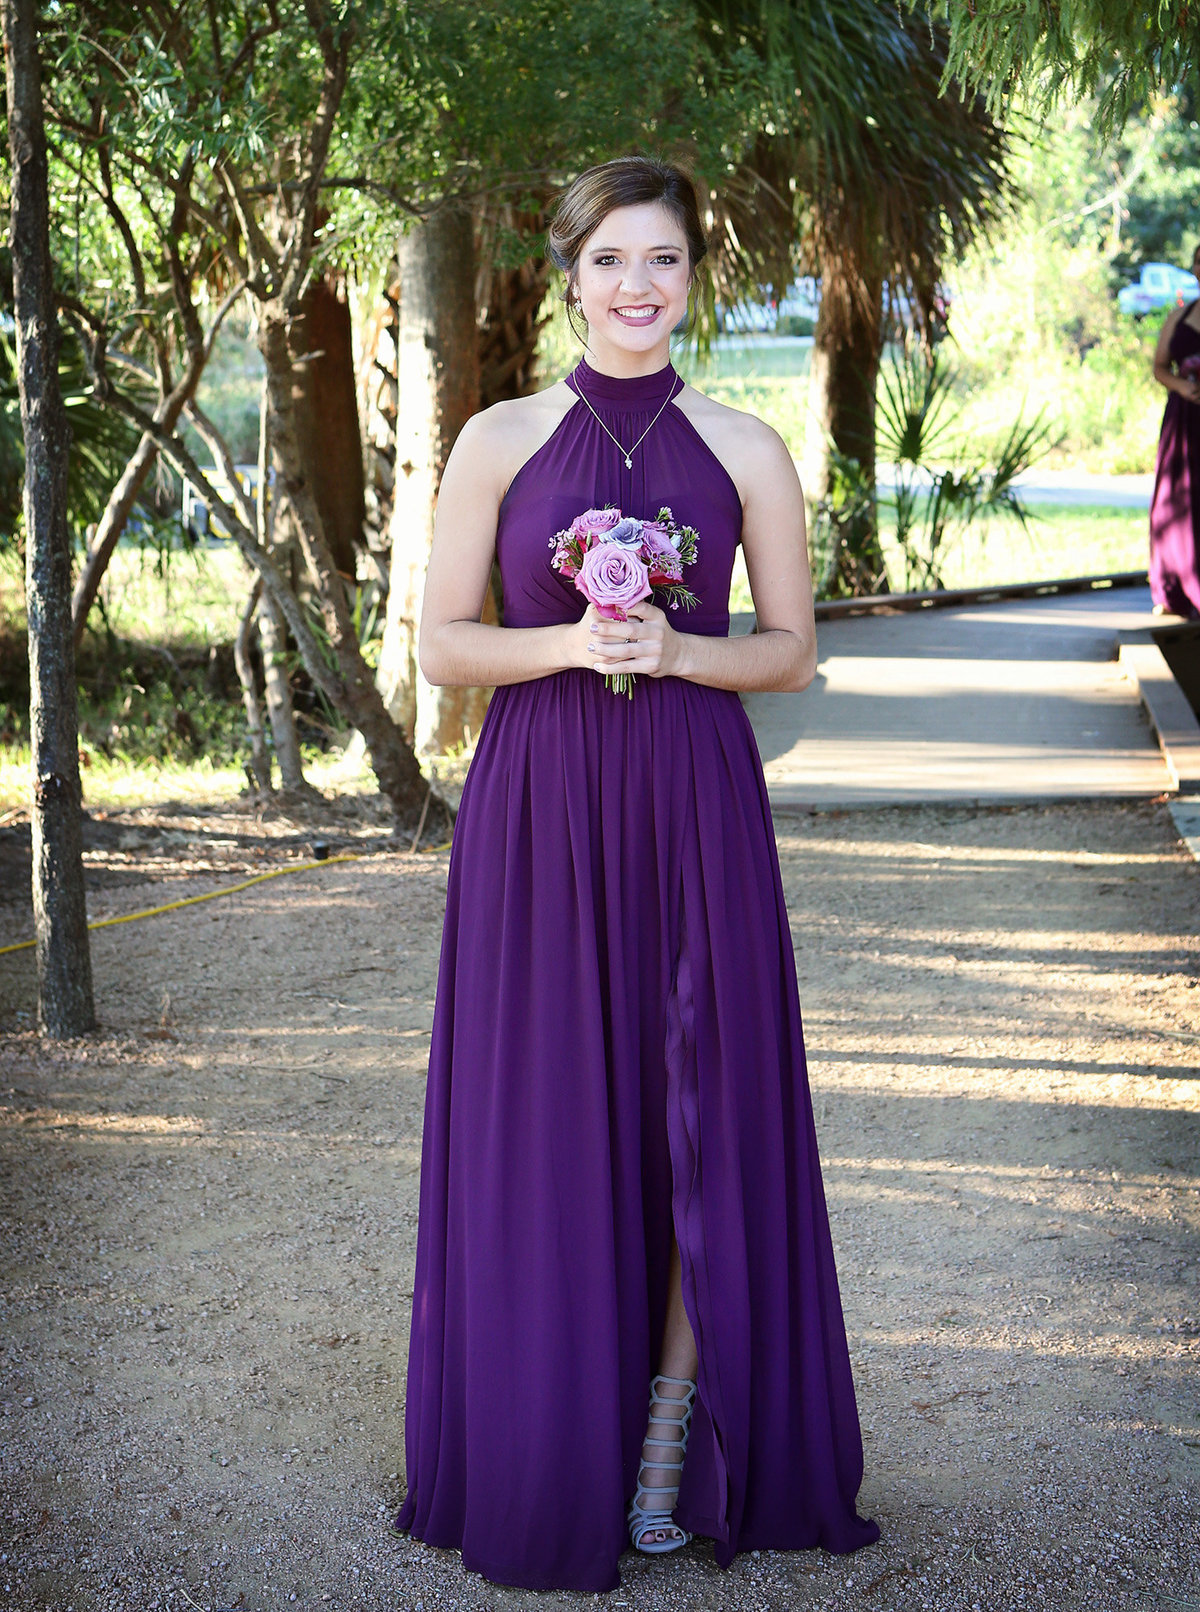 bridesmaid in a purple dress stops to pose before walking down the aisle in a wedding at City Park, New Orleans